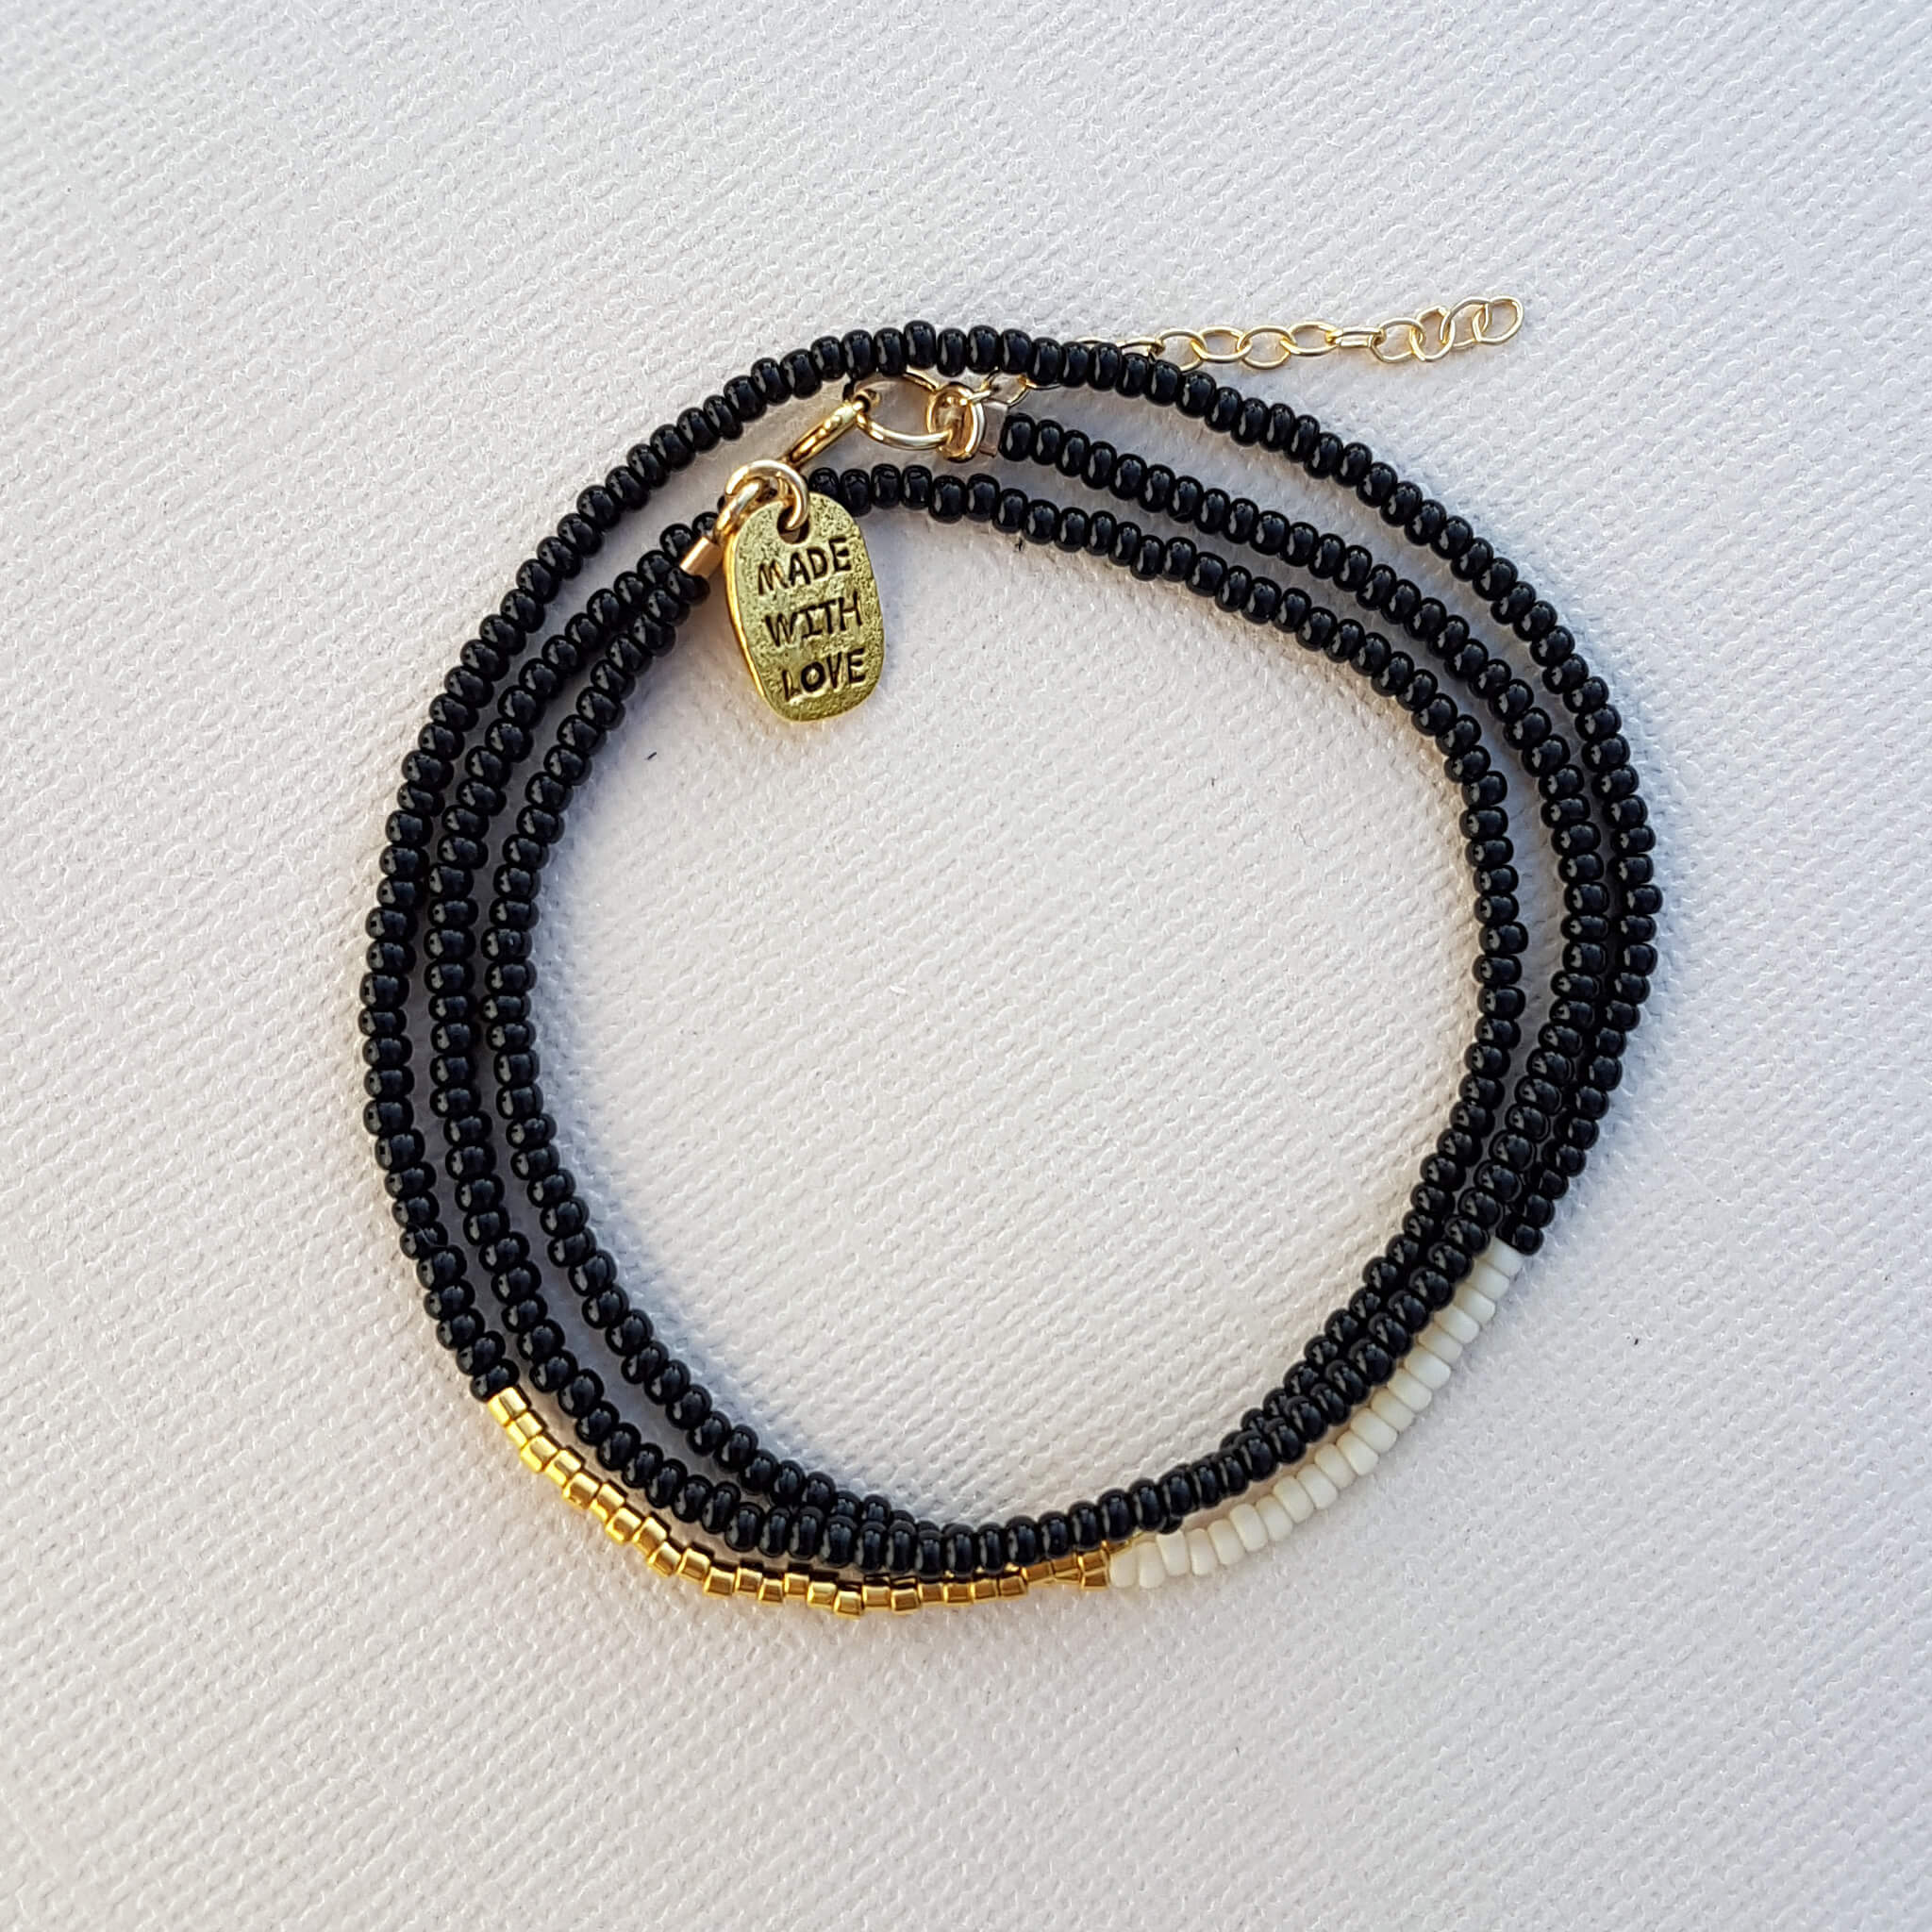 Sidai Designs Endito Triple Wrap Bracelet Handmade Black, Cream & Gold - Unik by Nature